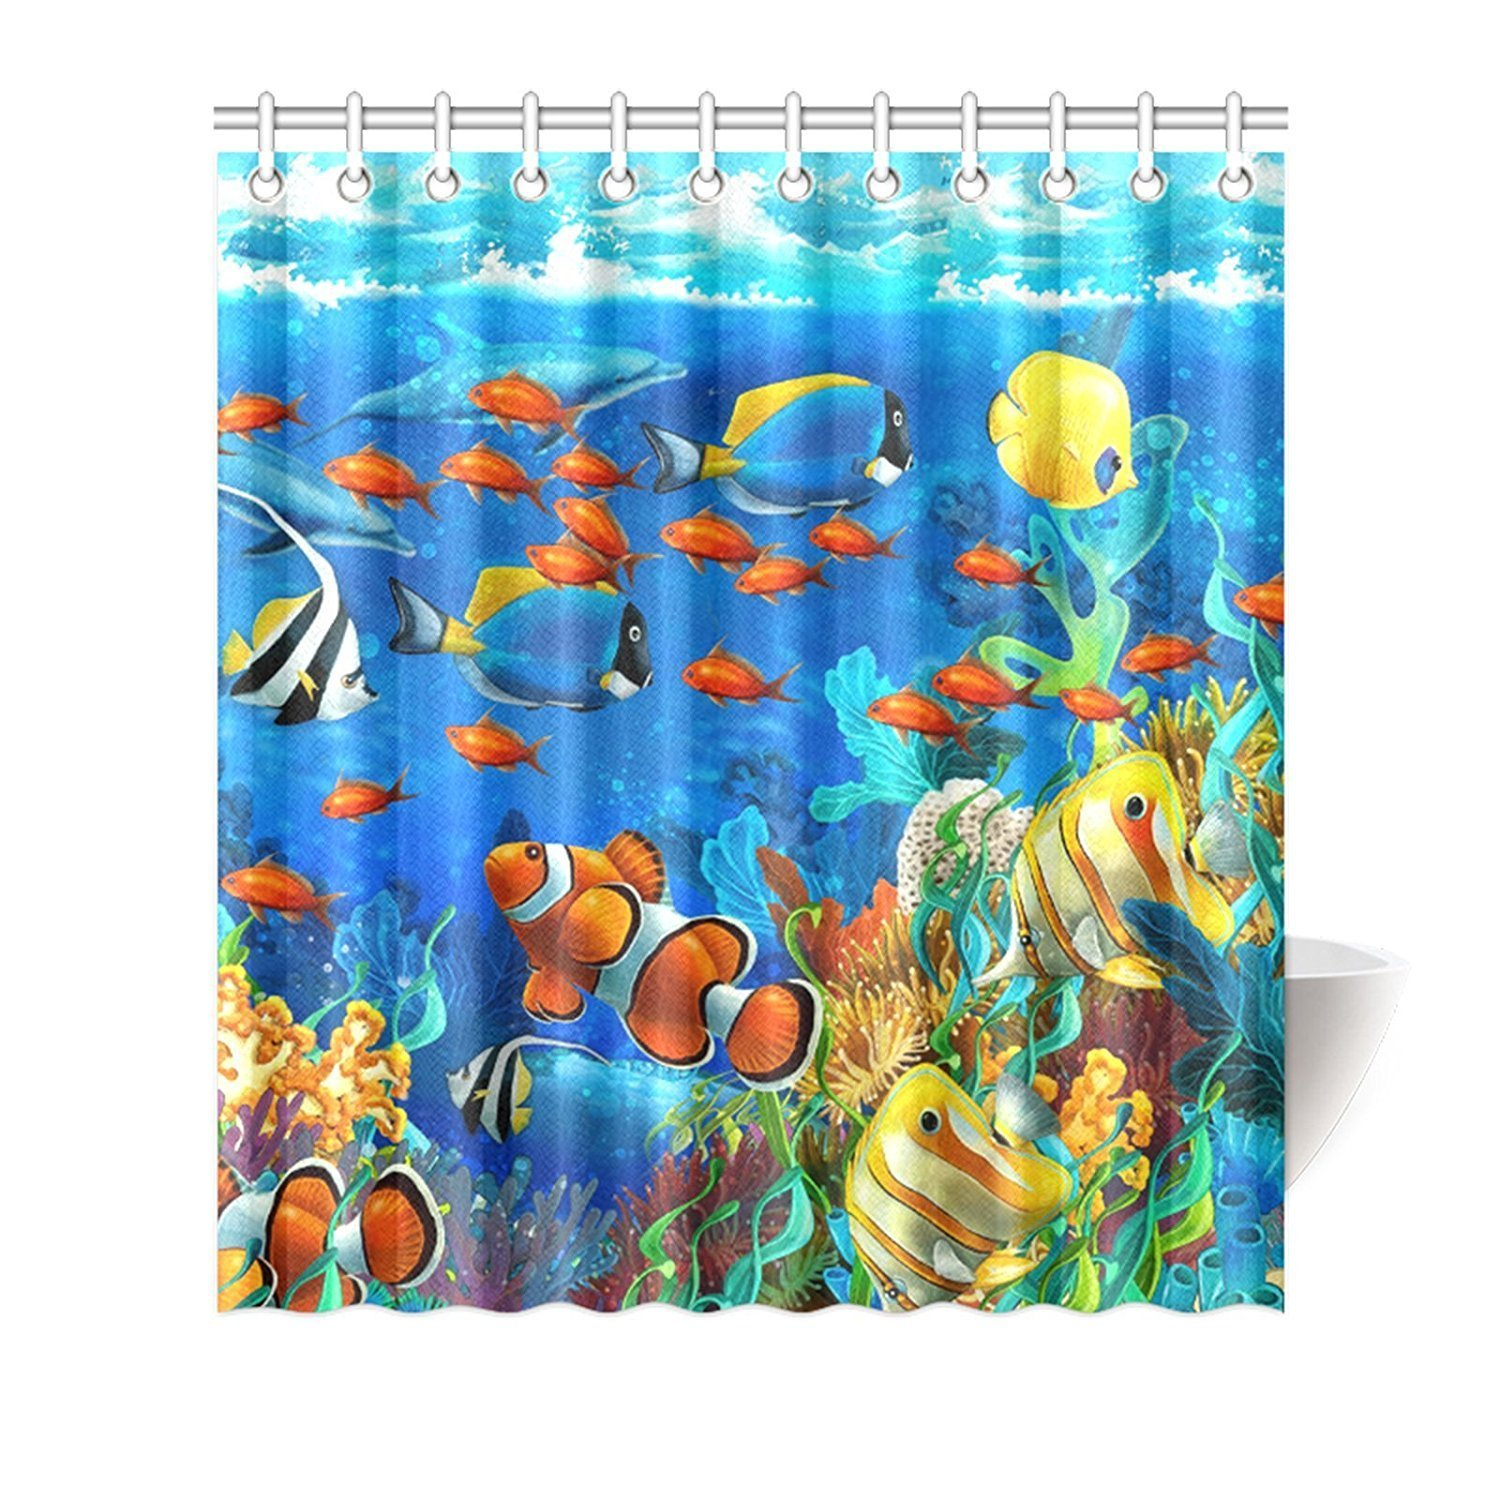 Undersea Tropical Fish Shower Curtain Liner Bathroom Set